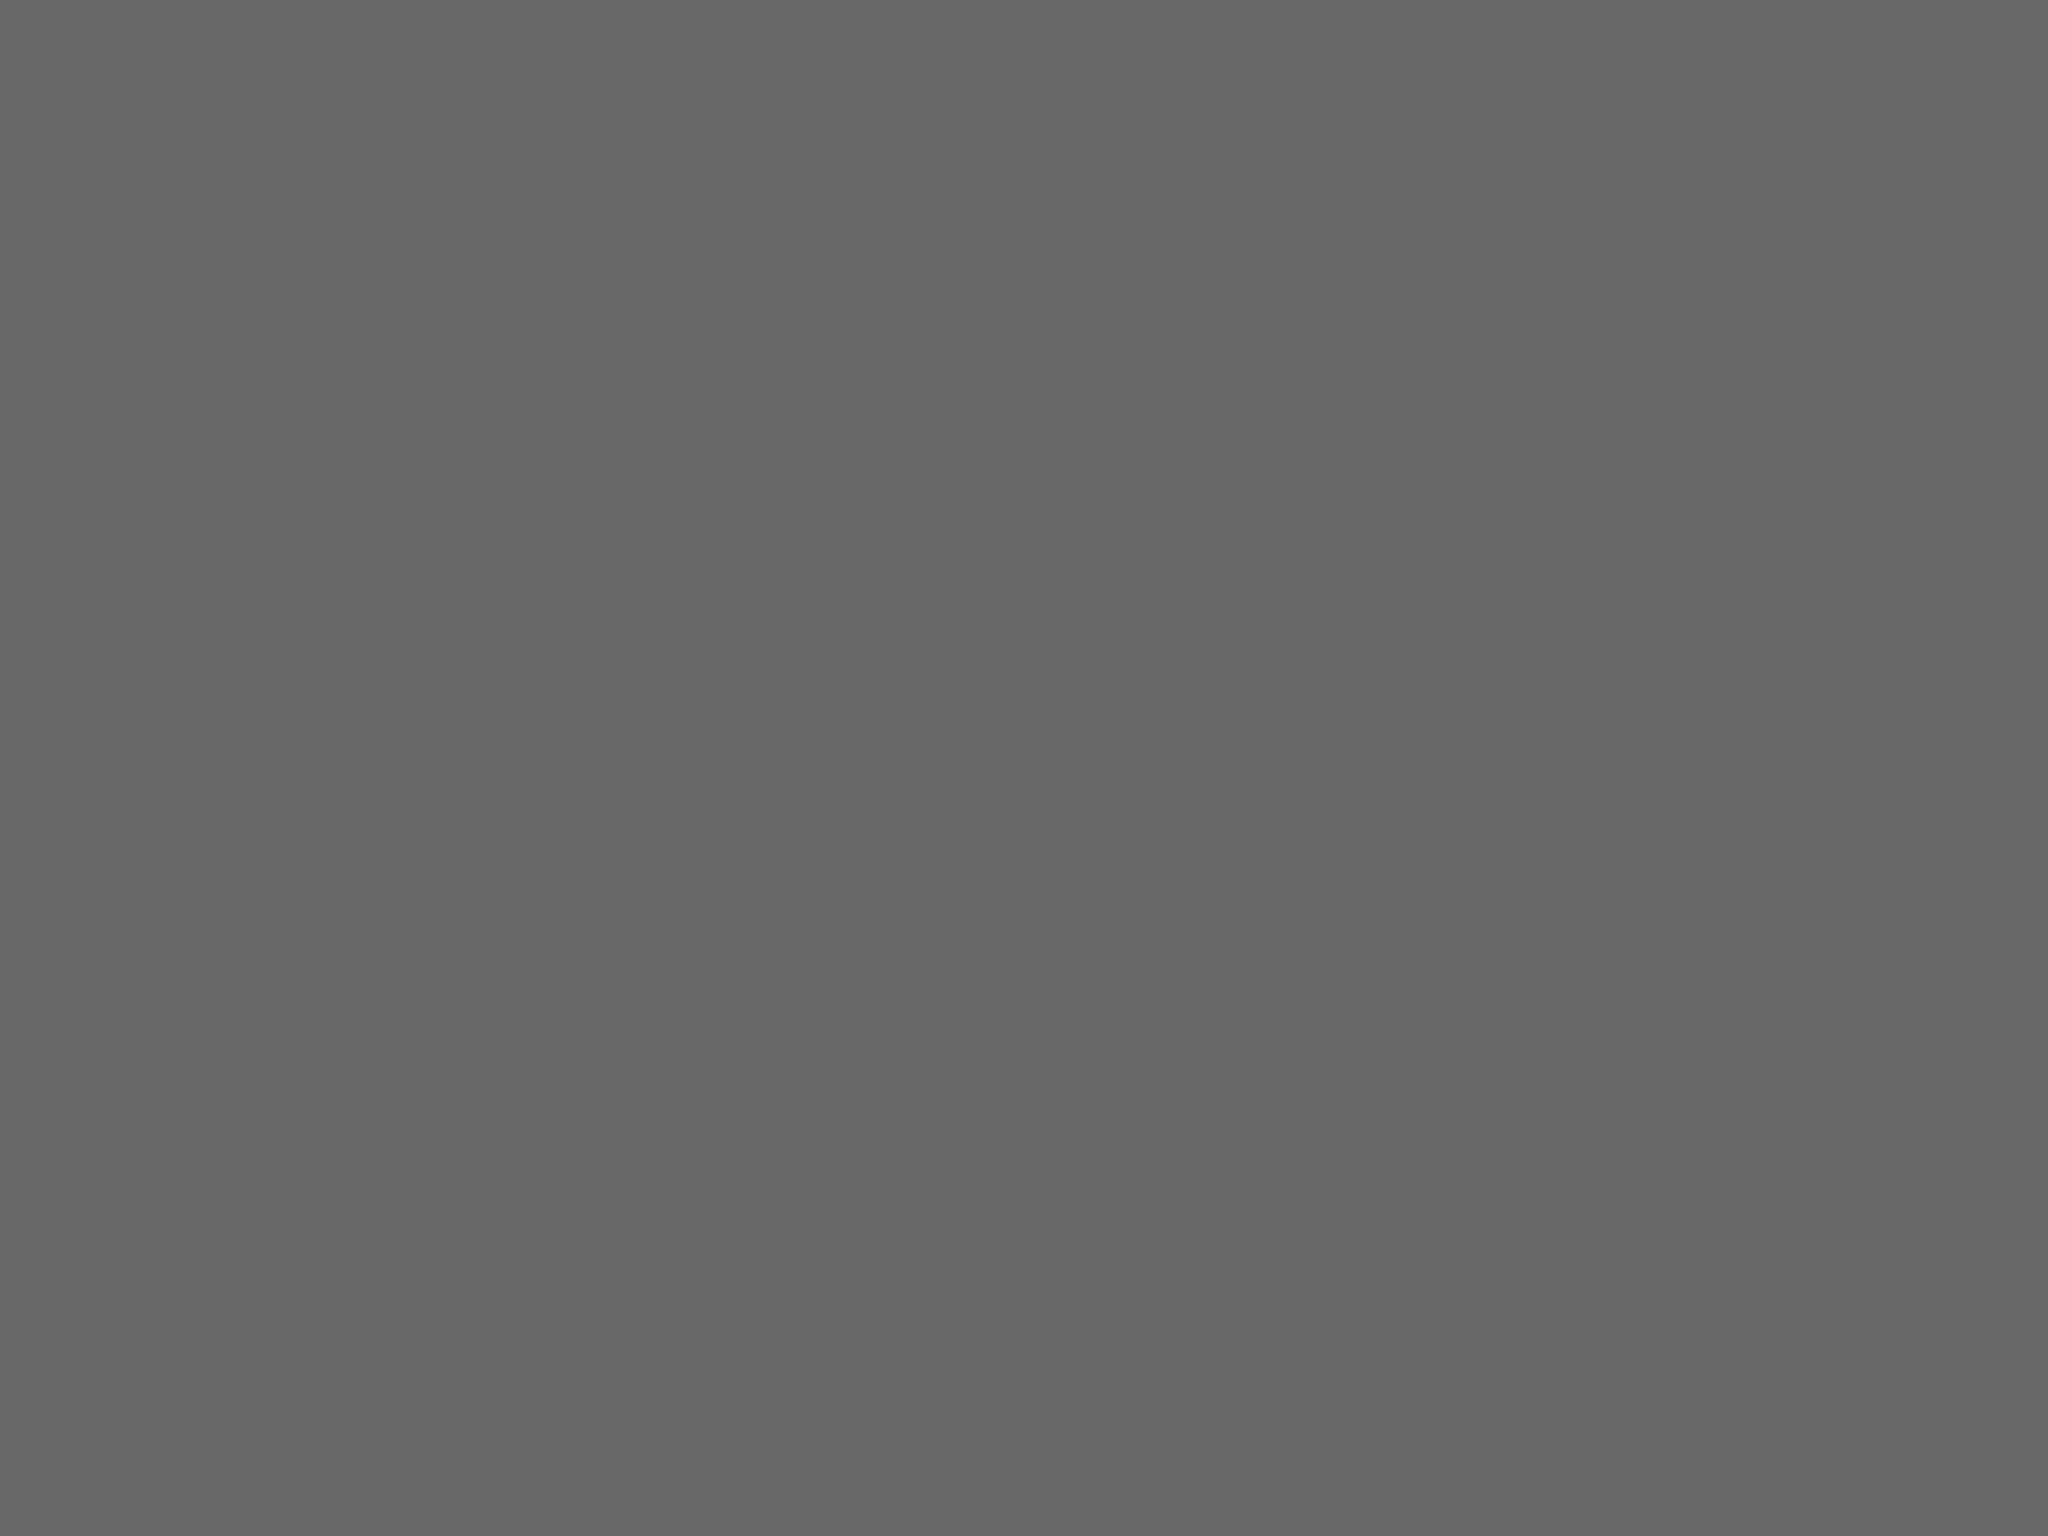 2048x1536 Dim Gray Solid Color Background